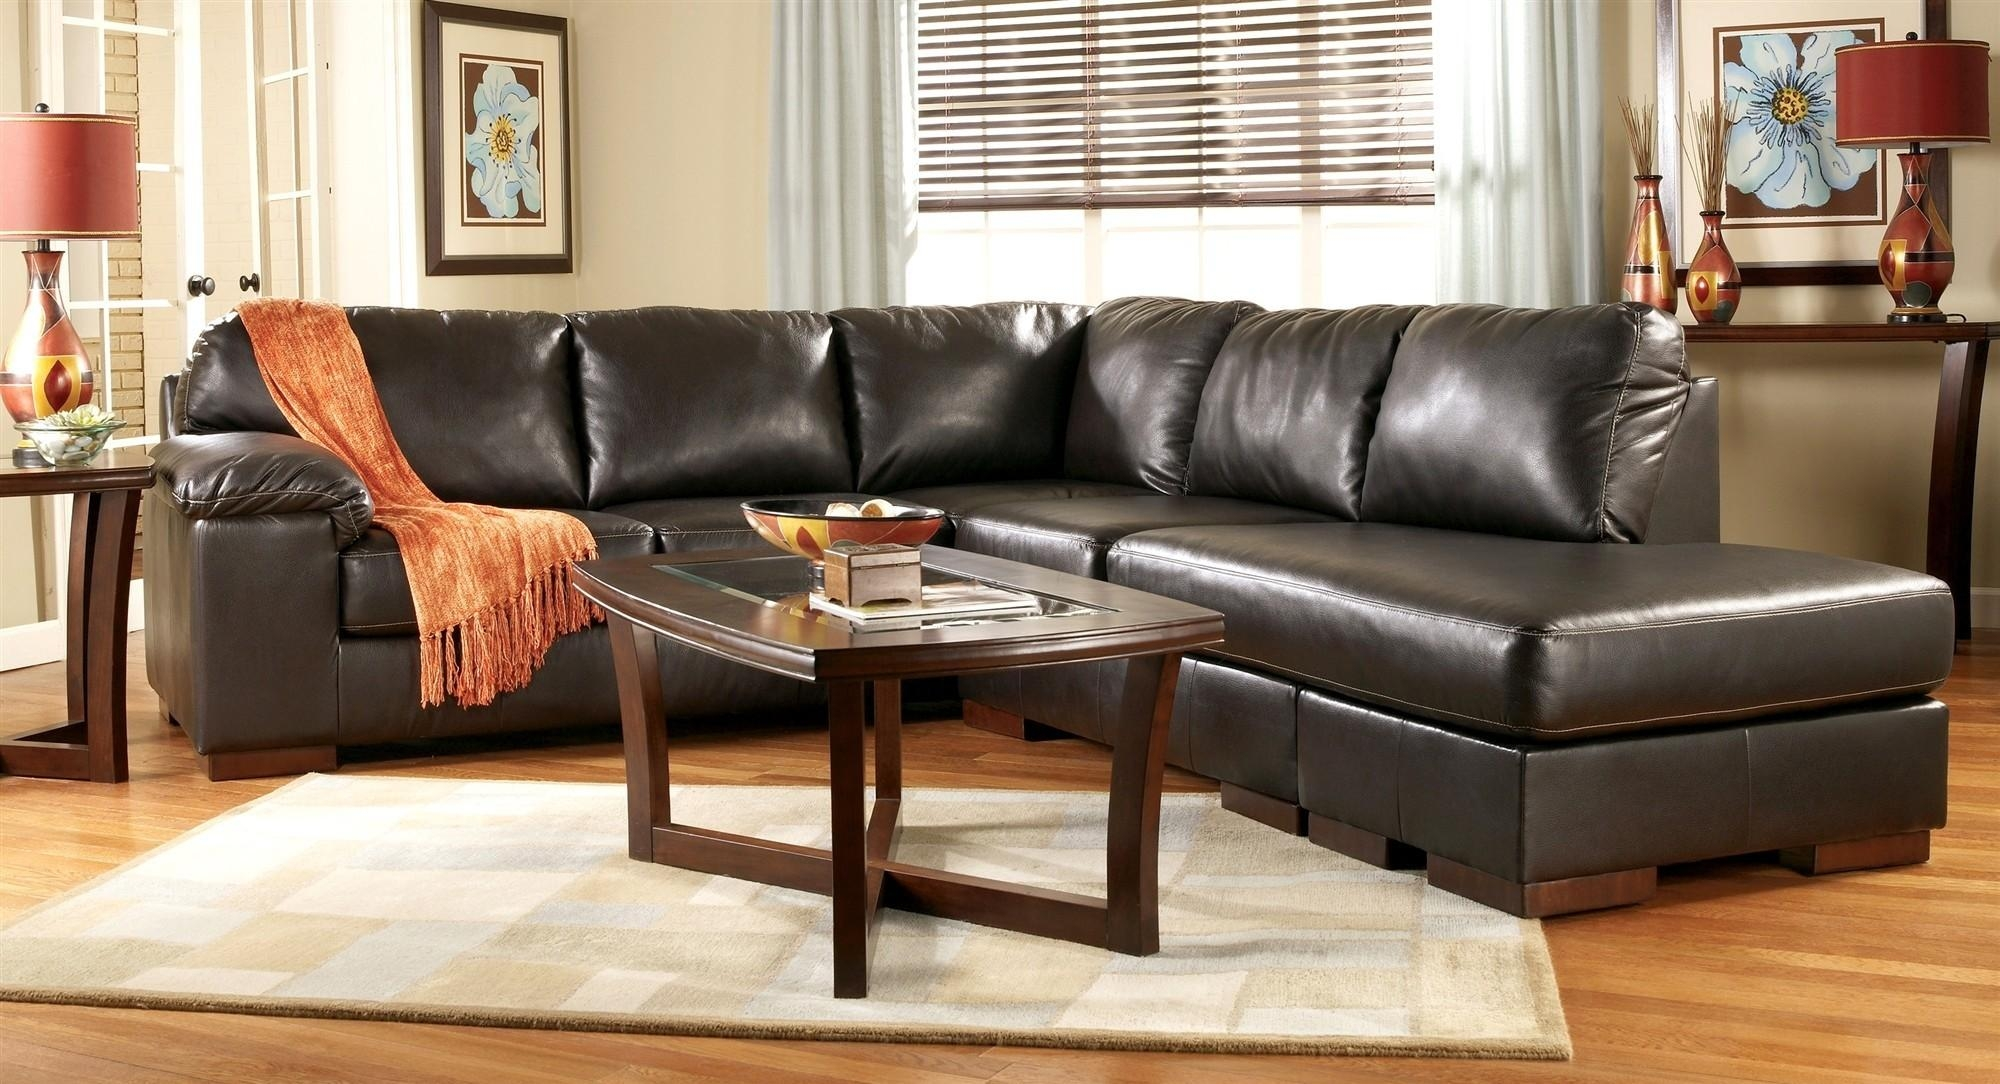 Living Room Design Ideas Brown Leather Sofa Lavita Home (Image 12 of 20)